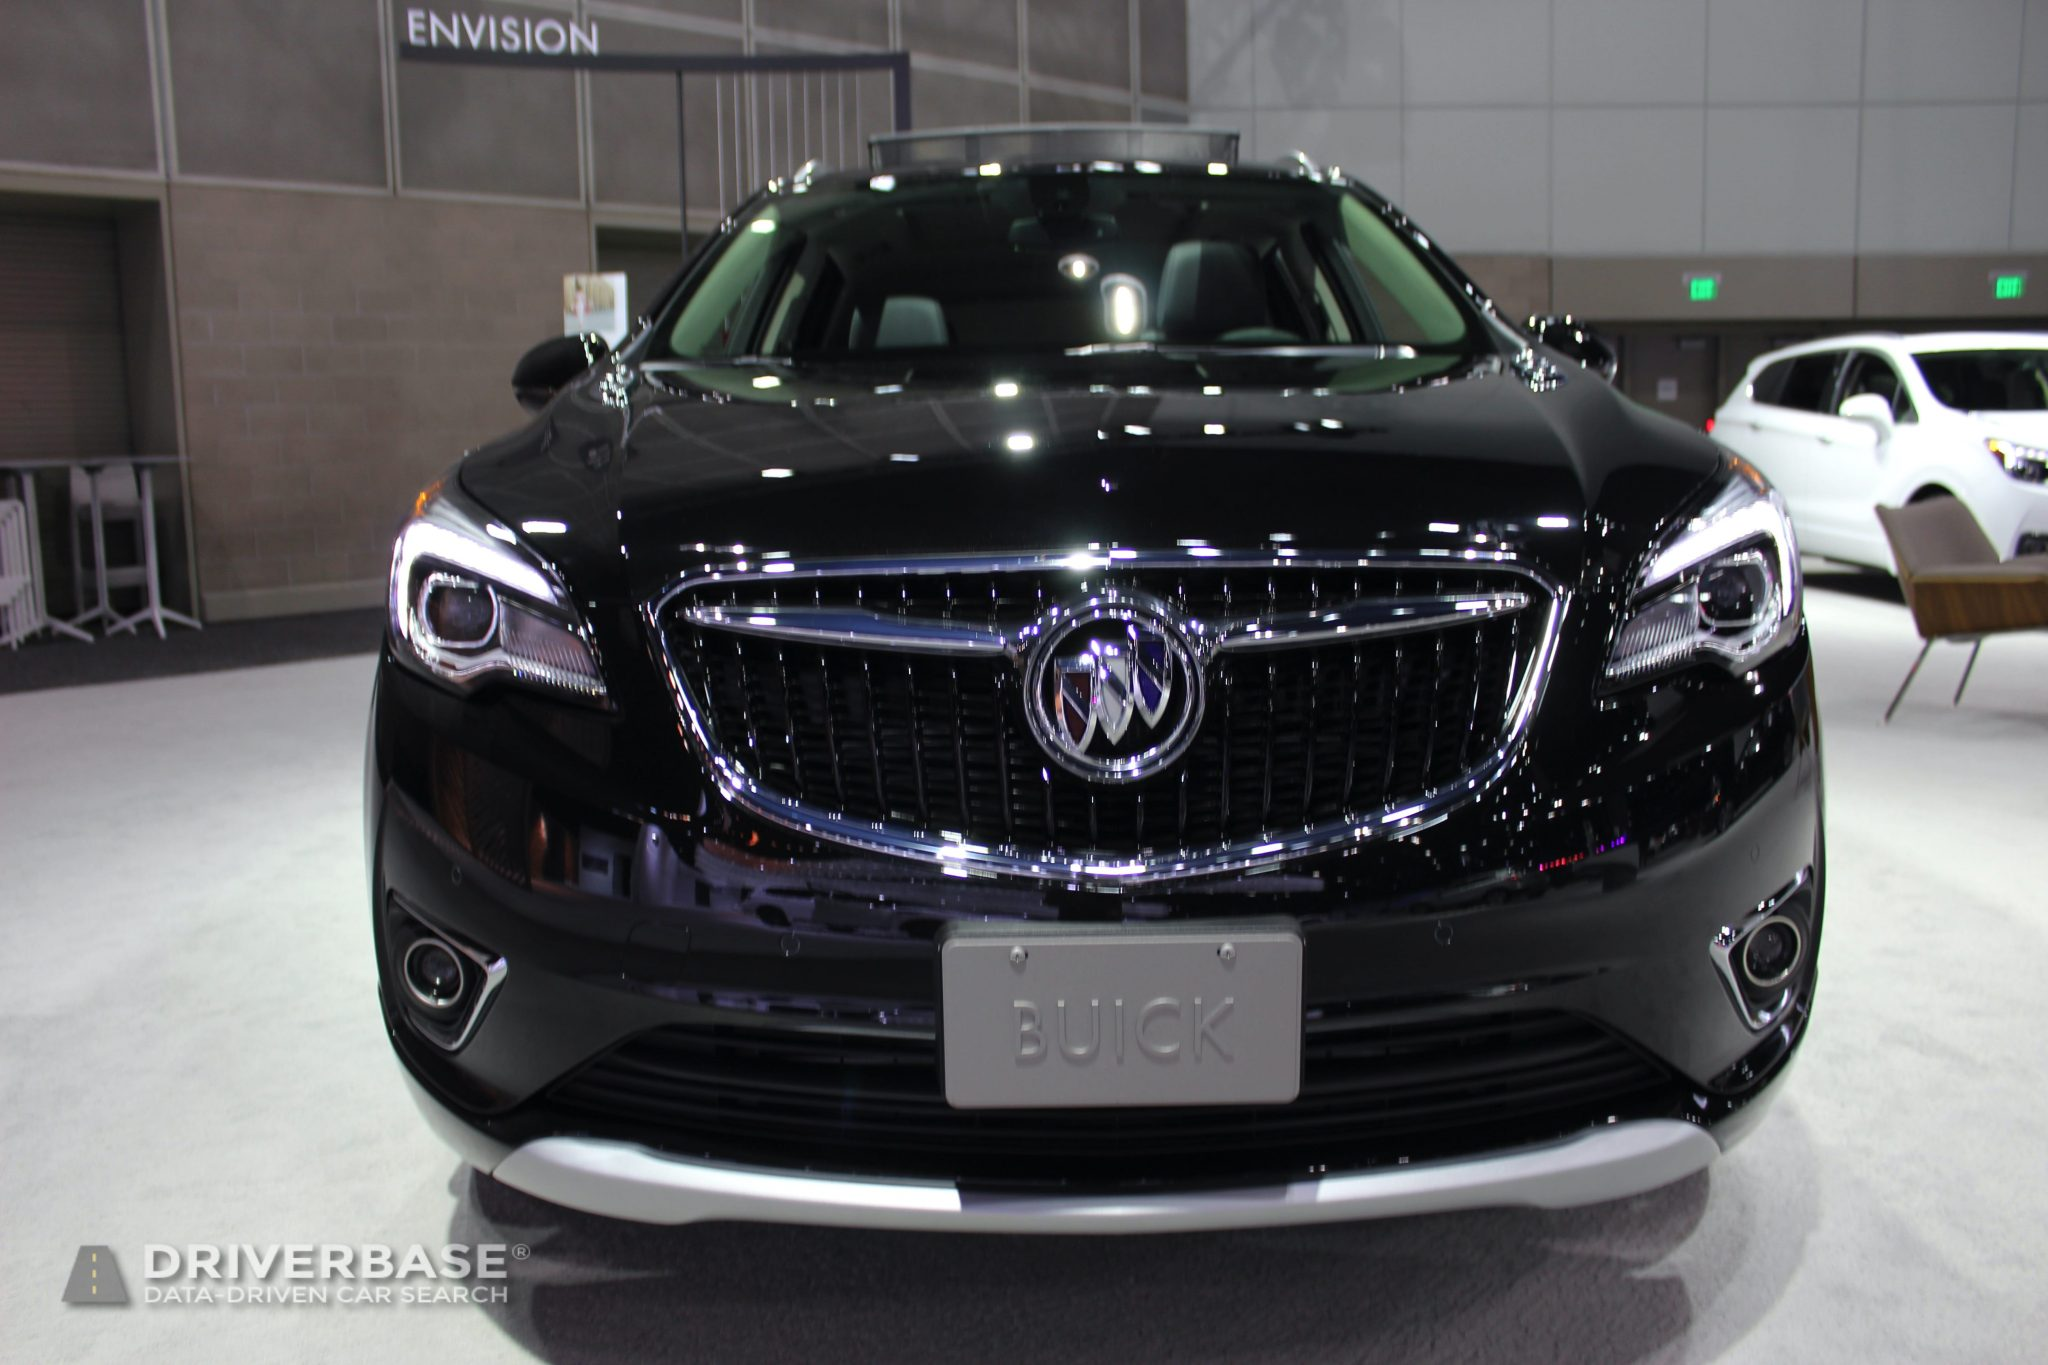 2020 Buick Envision at the 2019 Los Angeles Auto Show